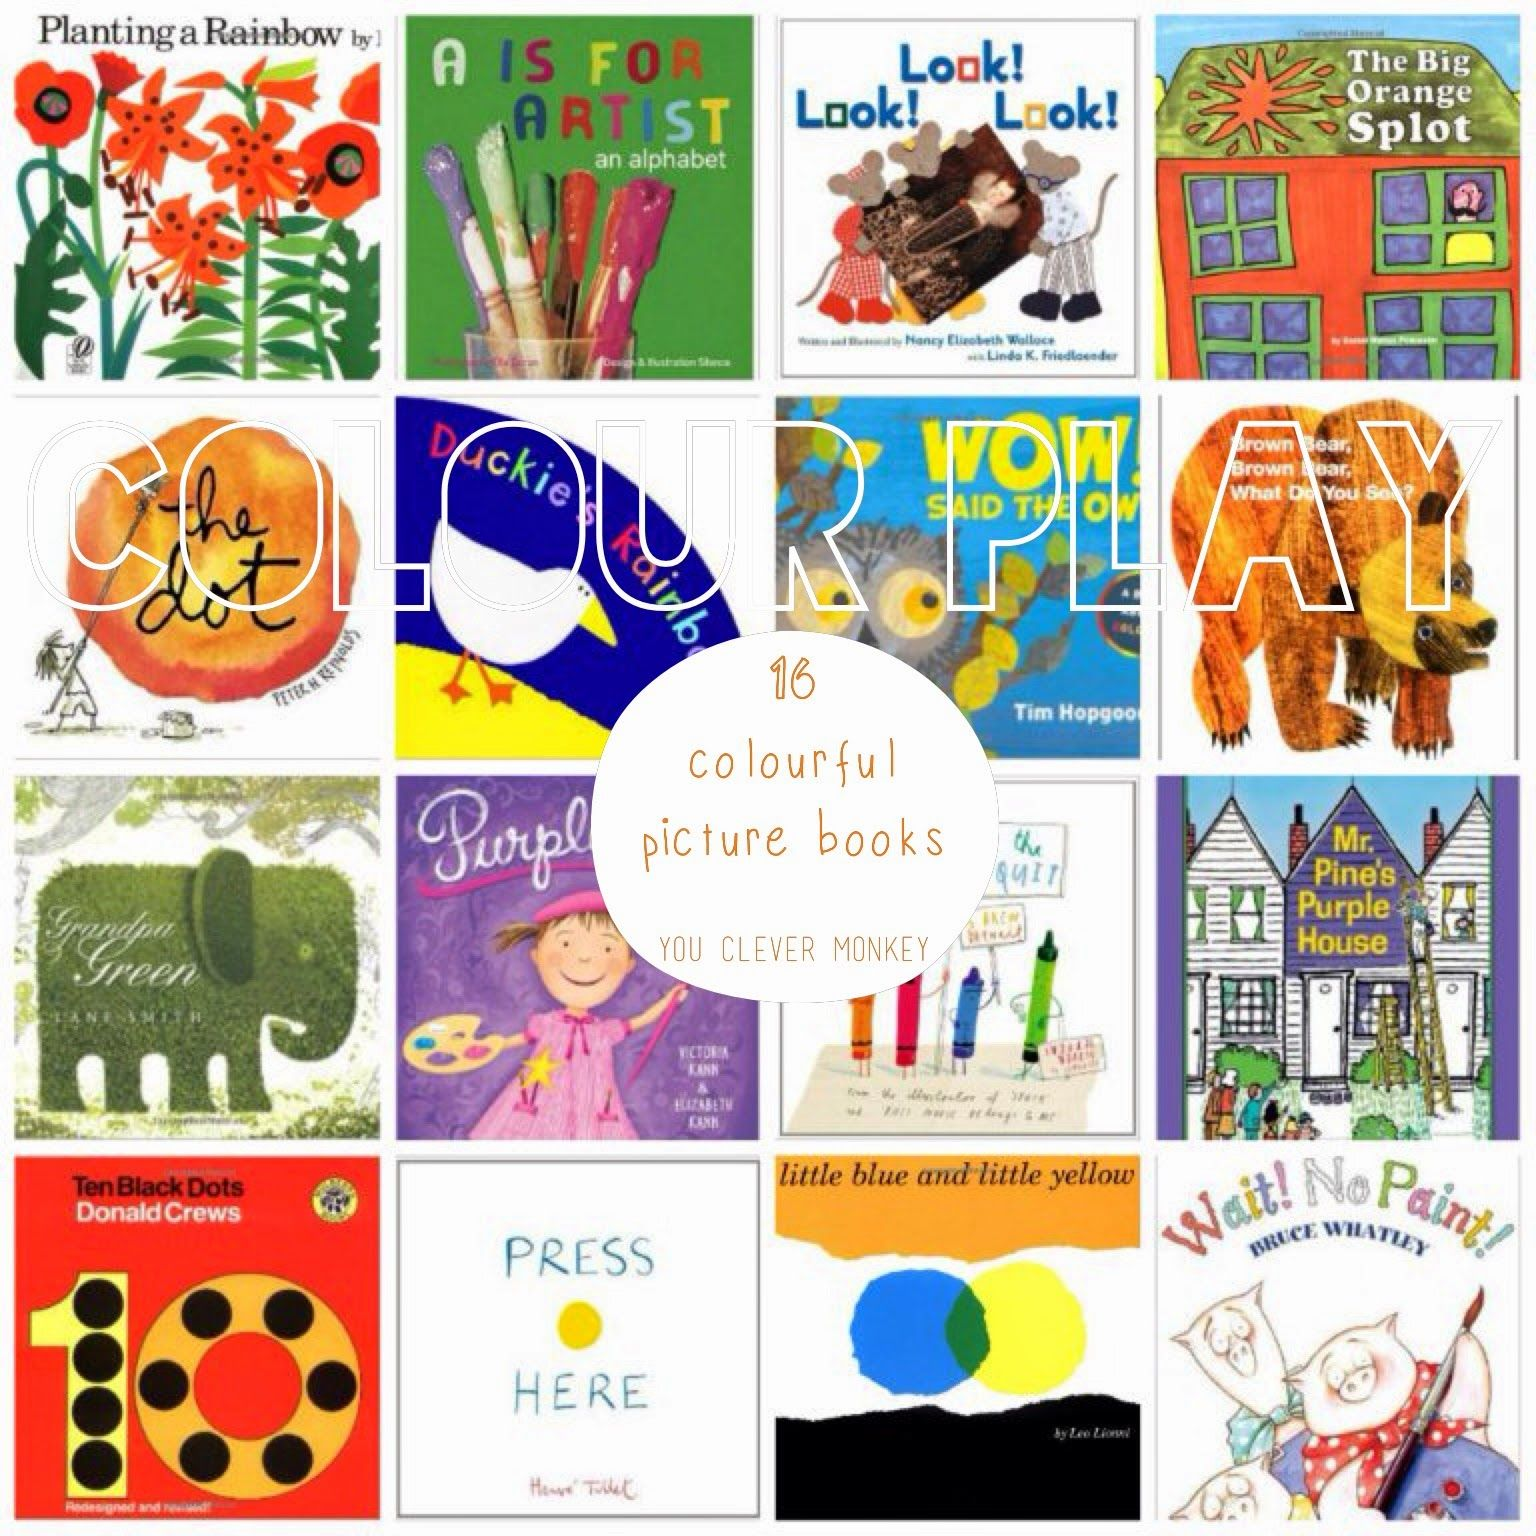 Colour play 16 colourful picture books to support learning